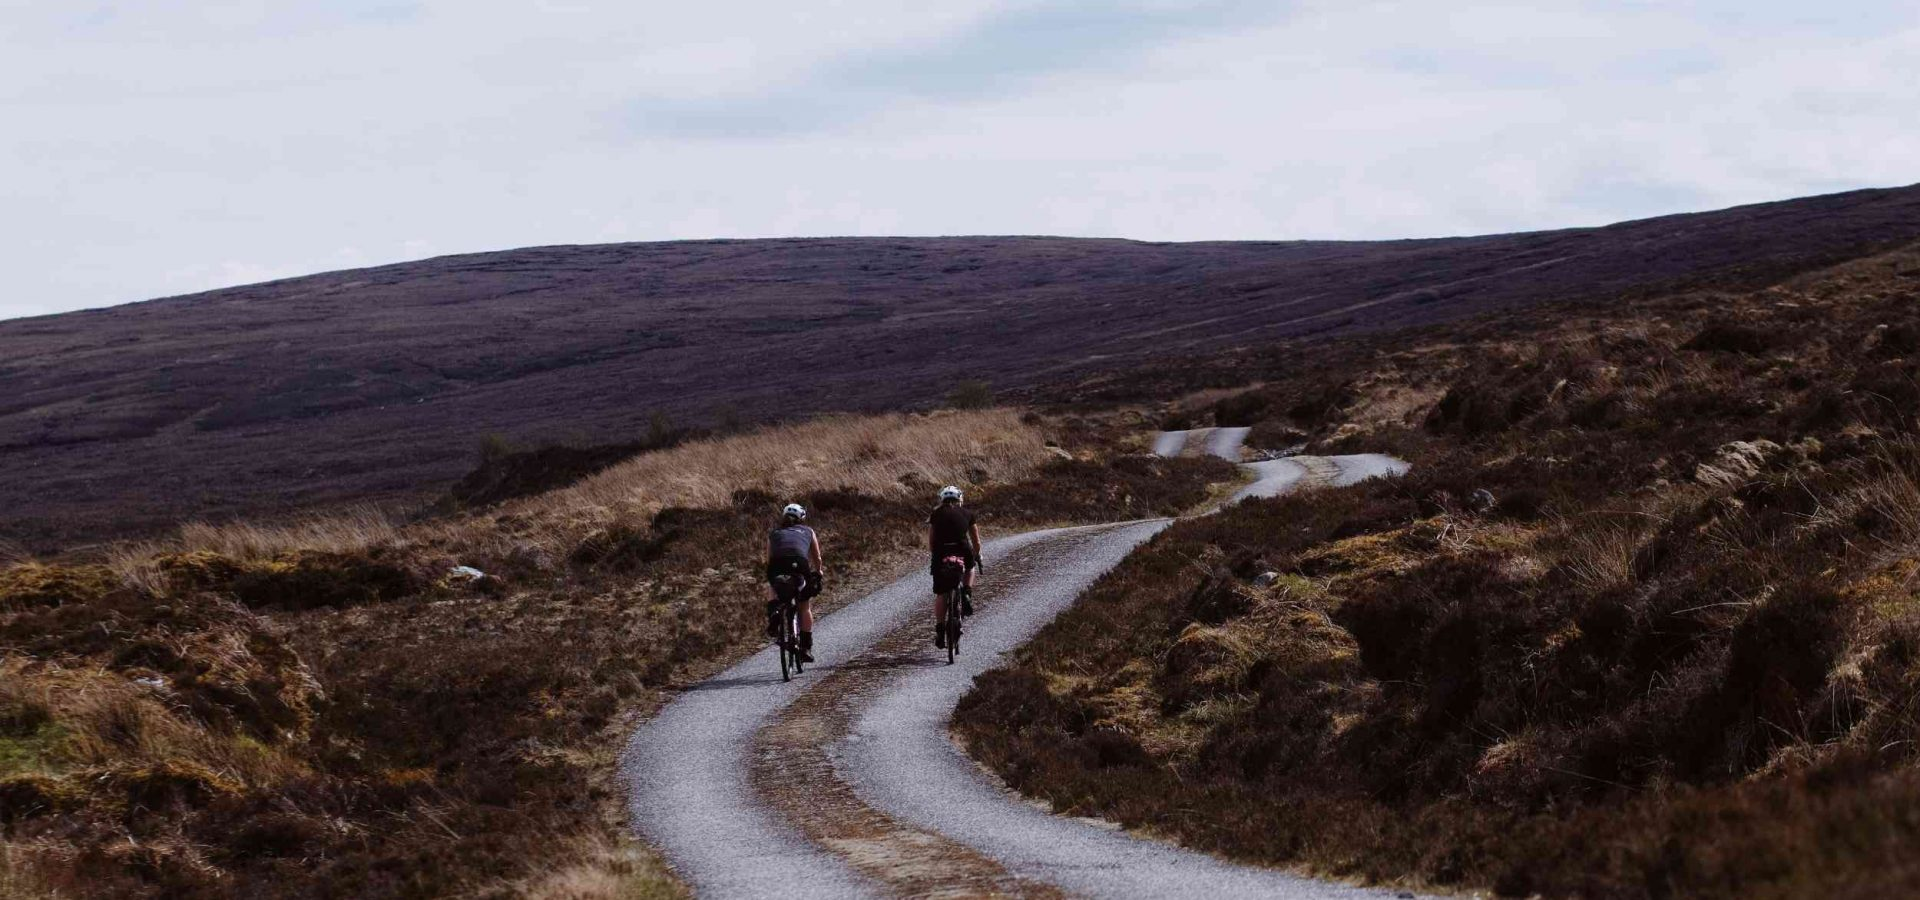 two cyclist bikepacking in the middle of a mountain